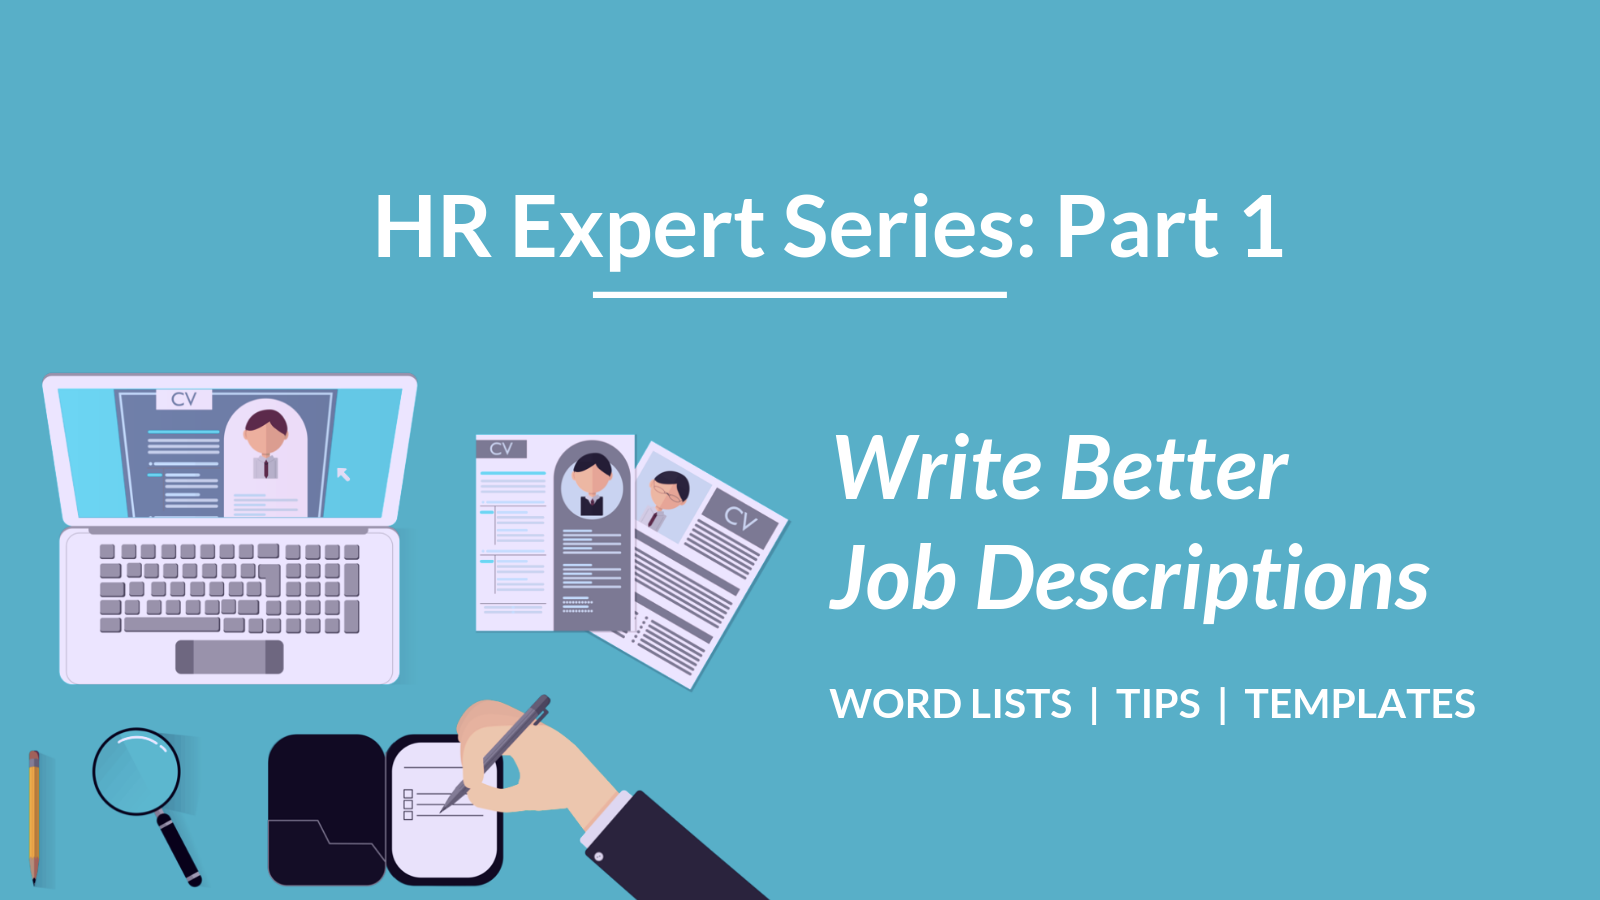 Talaera HR Expert Series - Part 1 - Job Descriptions